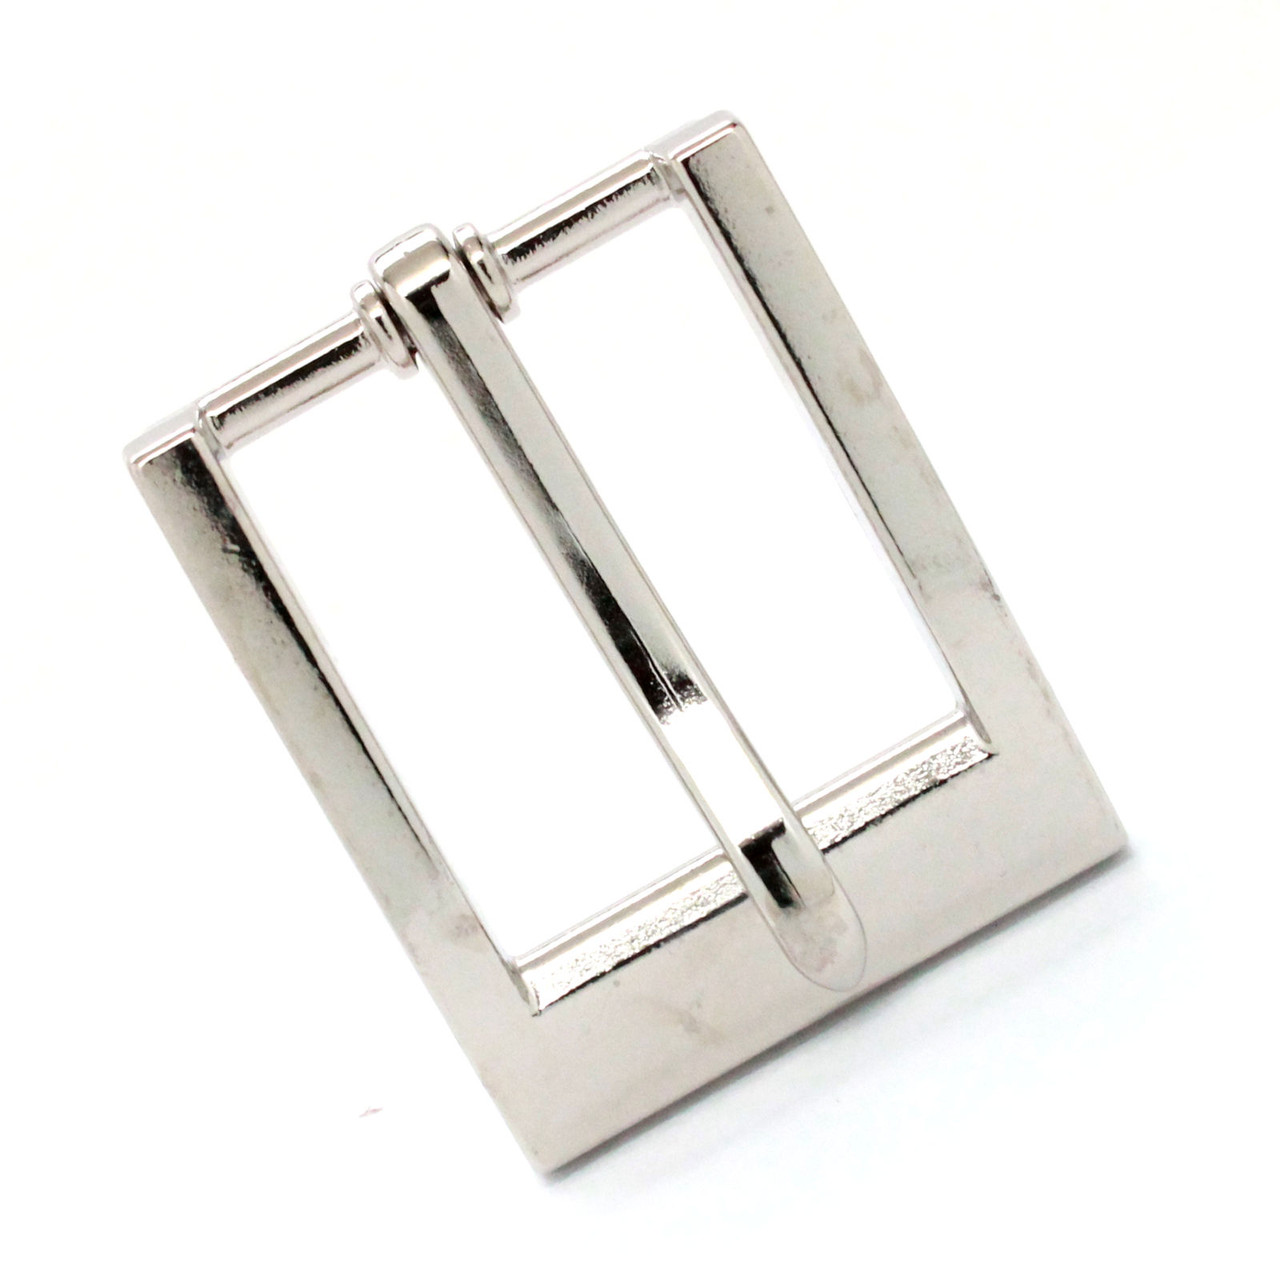 "Heel Bar Belt Buckle Nickel Plated 1-1/4"" Front"